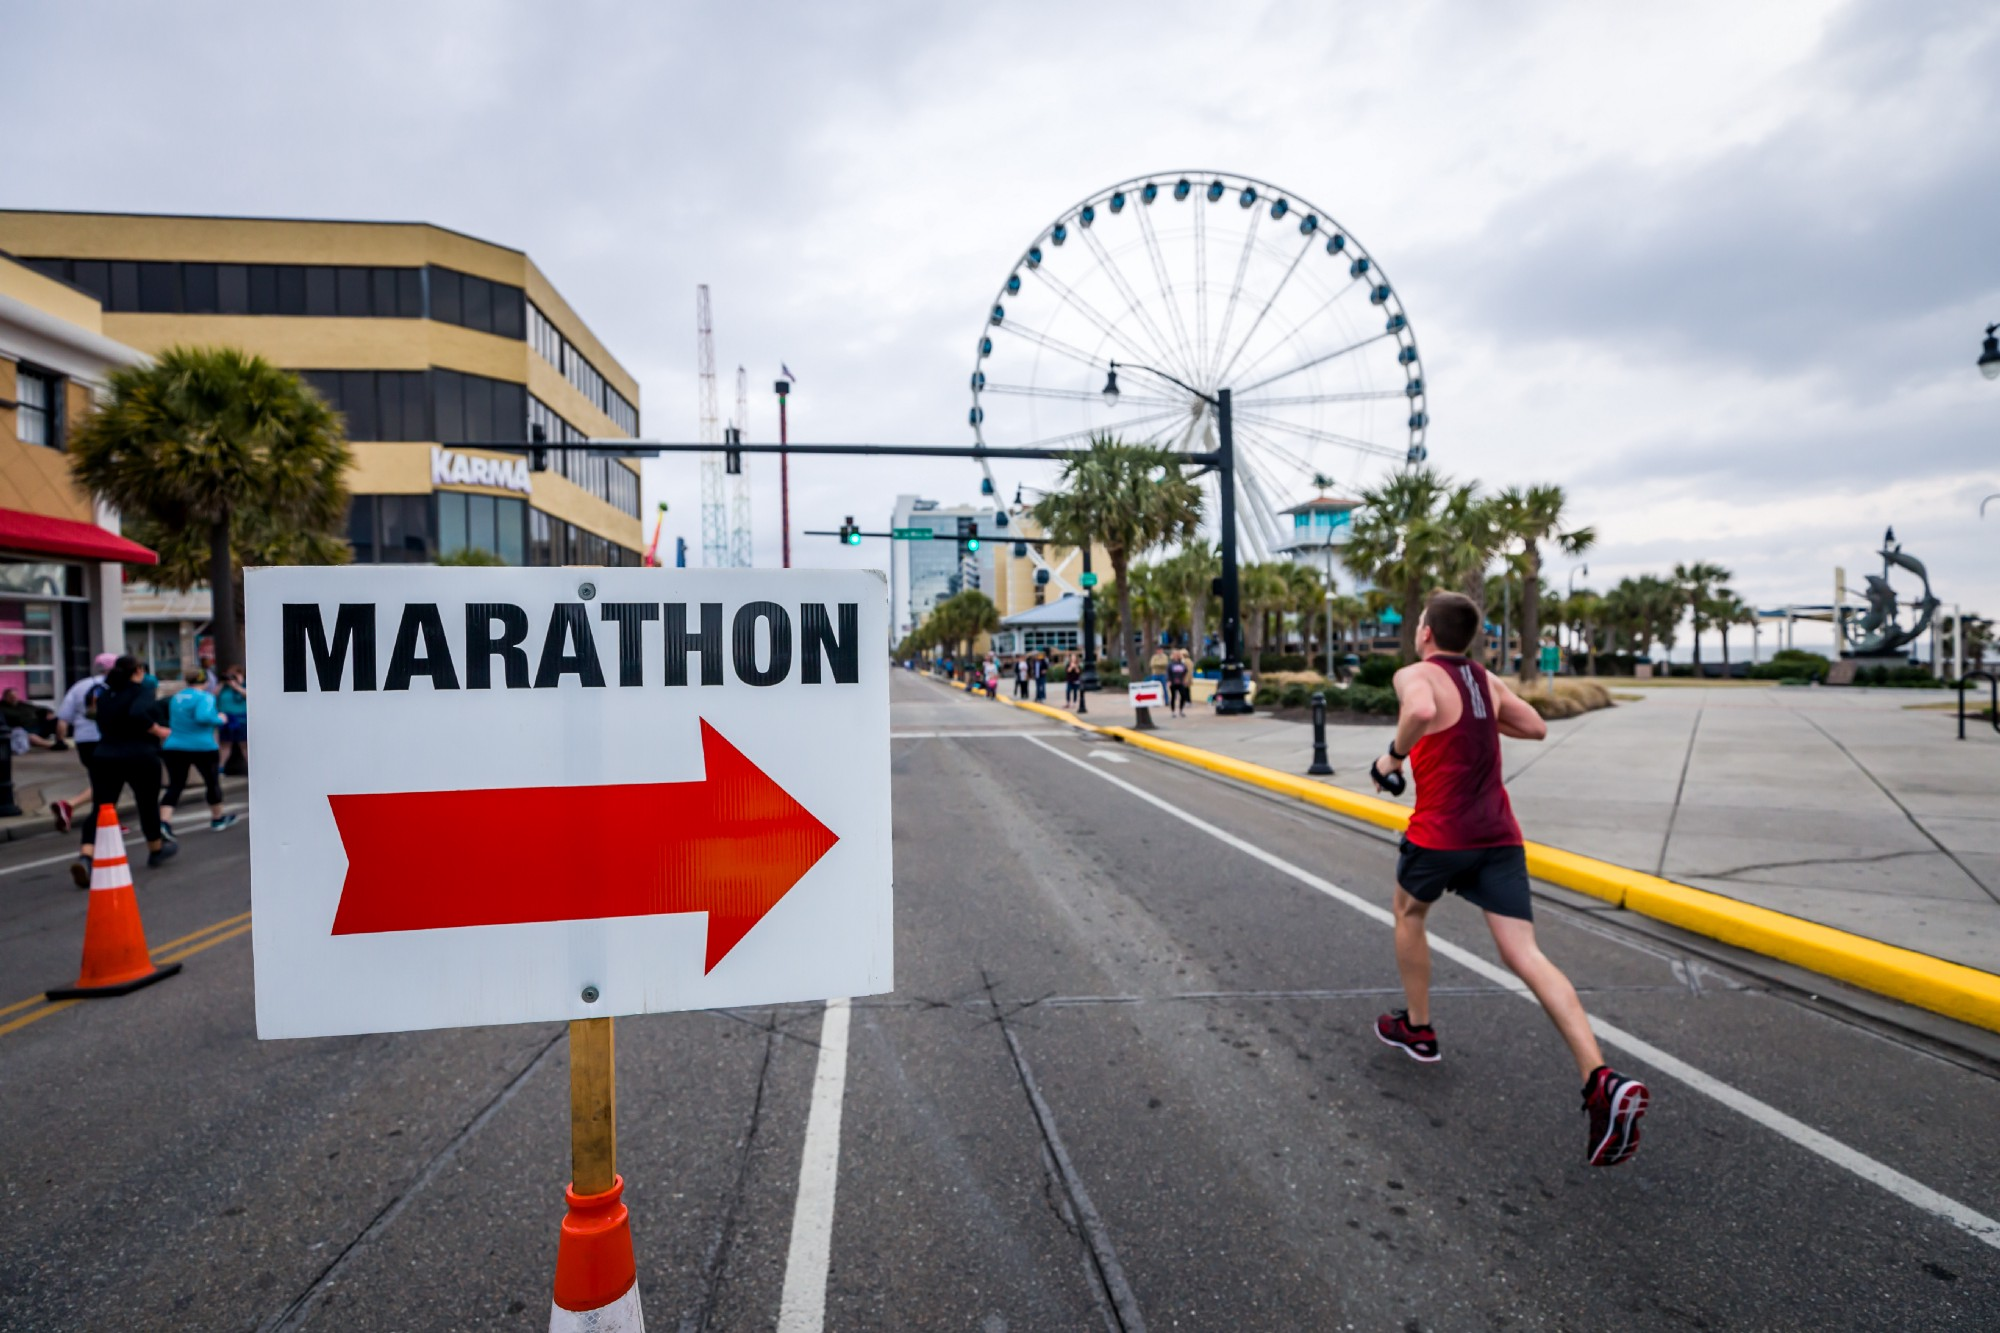 Runner running past a marathon sign with a red arrow